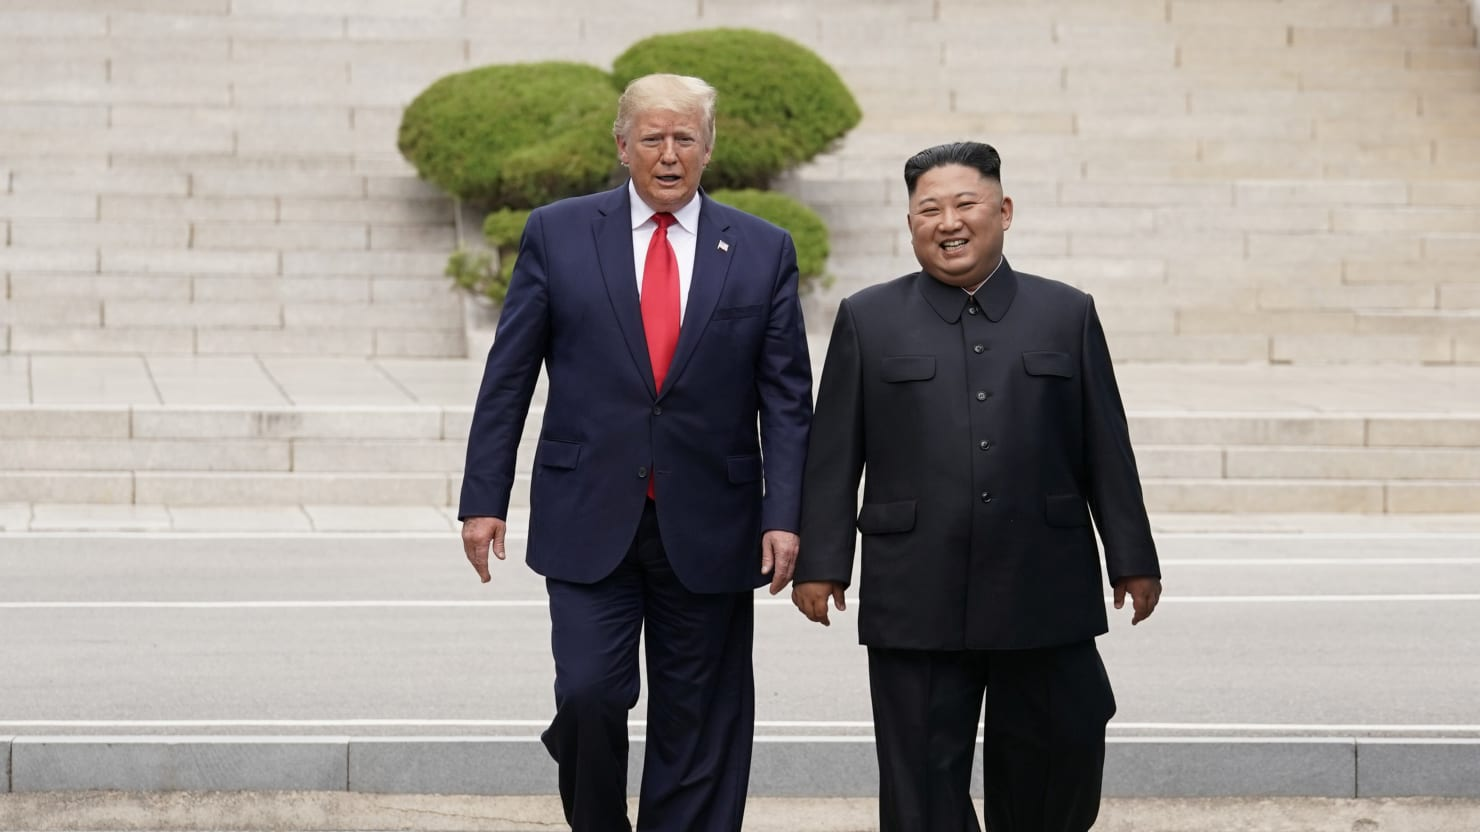 Trump Becomes First Sitting American President to Step Into North Korea—a Win for Kim Jong Un